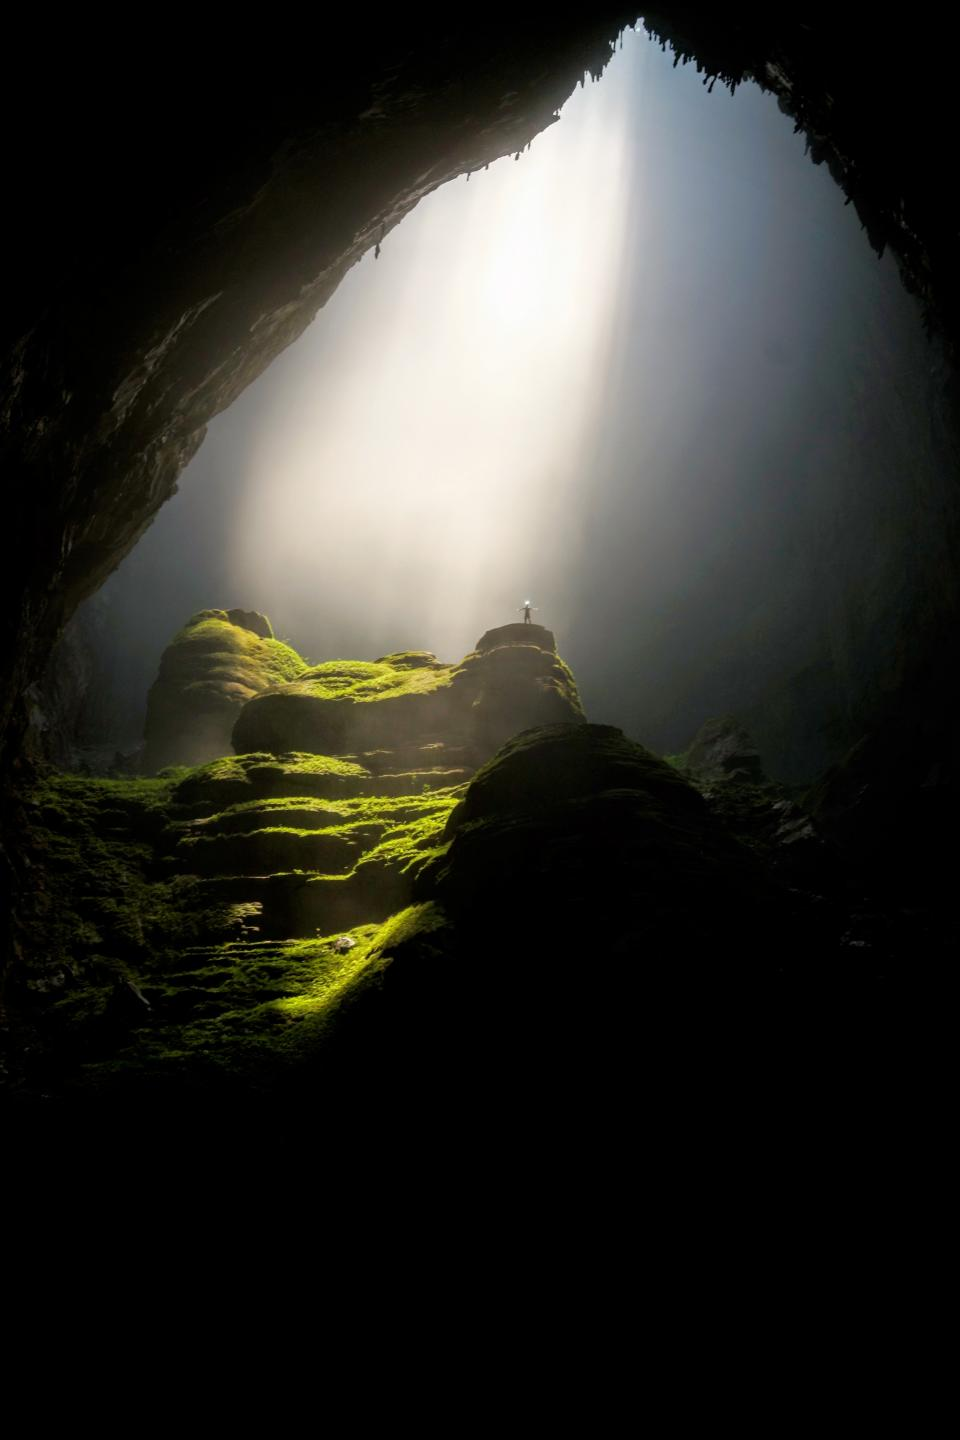 nature cave underground shadows light rays lush vegetation terraces